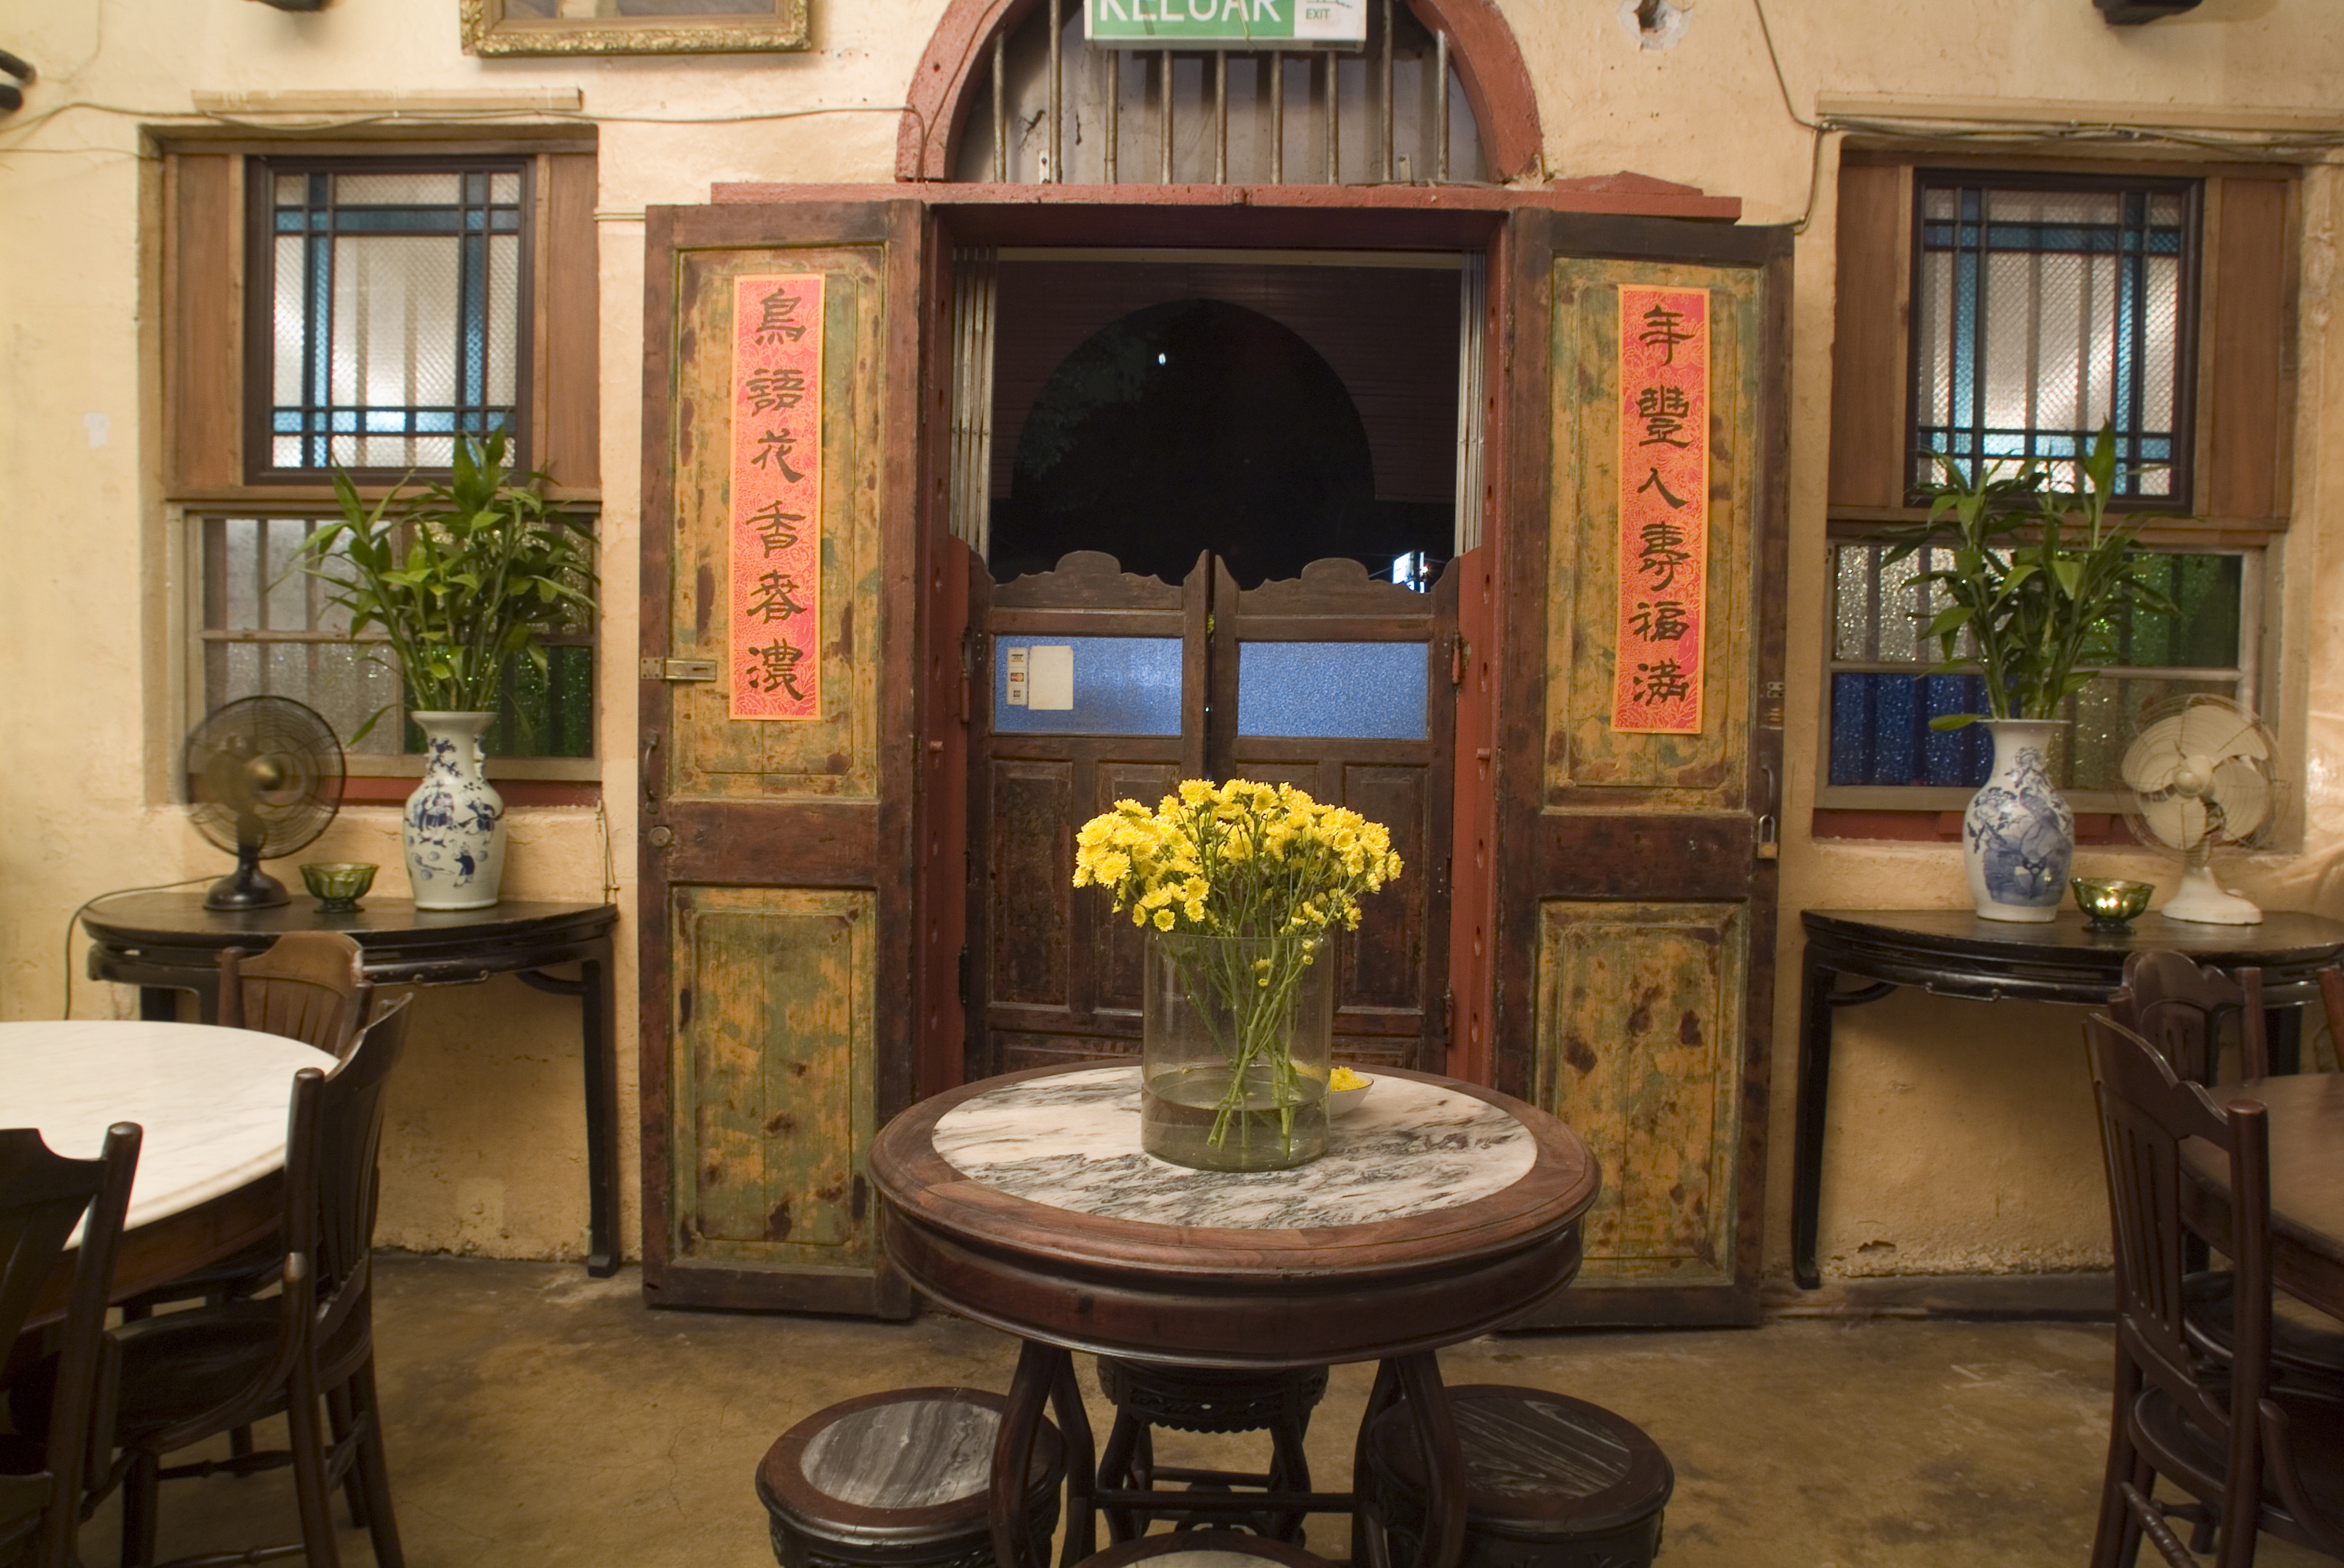 The entrance of Old China Cafe.